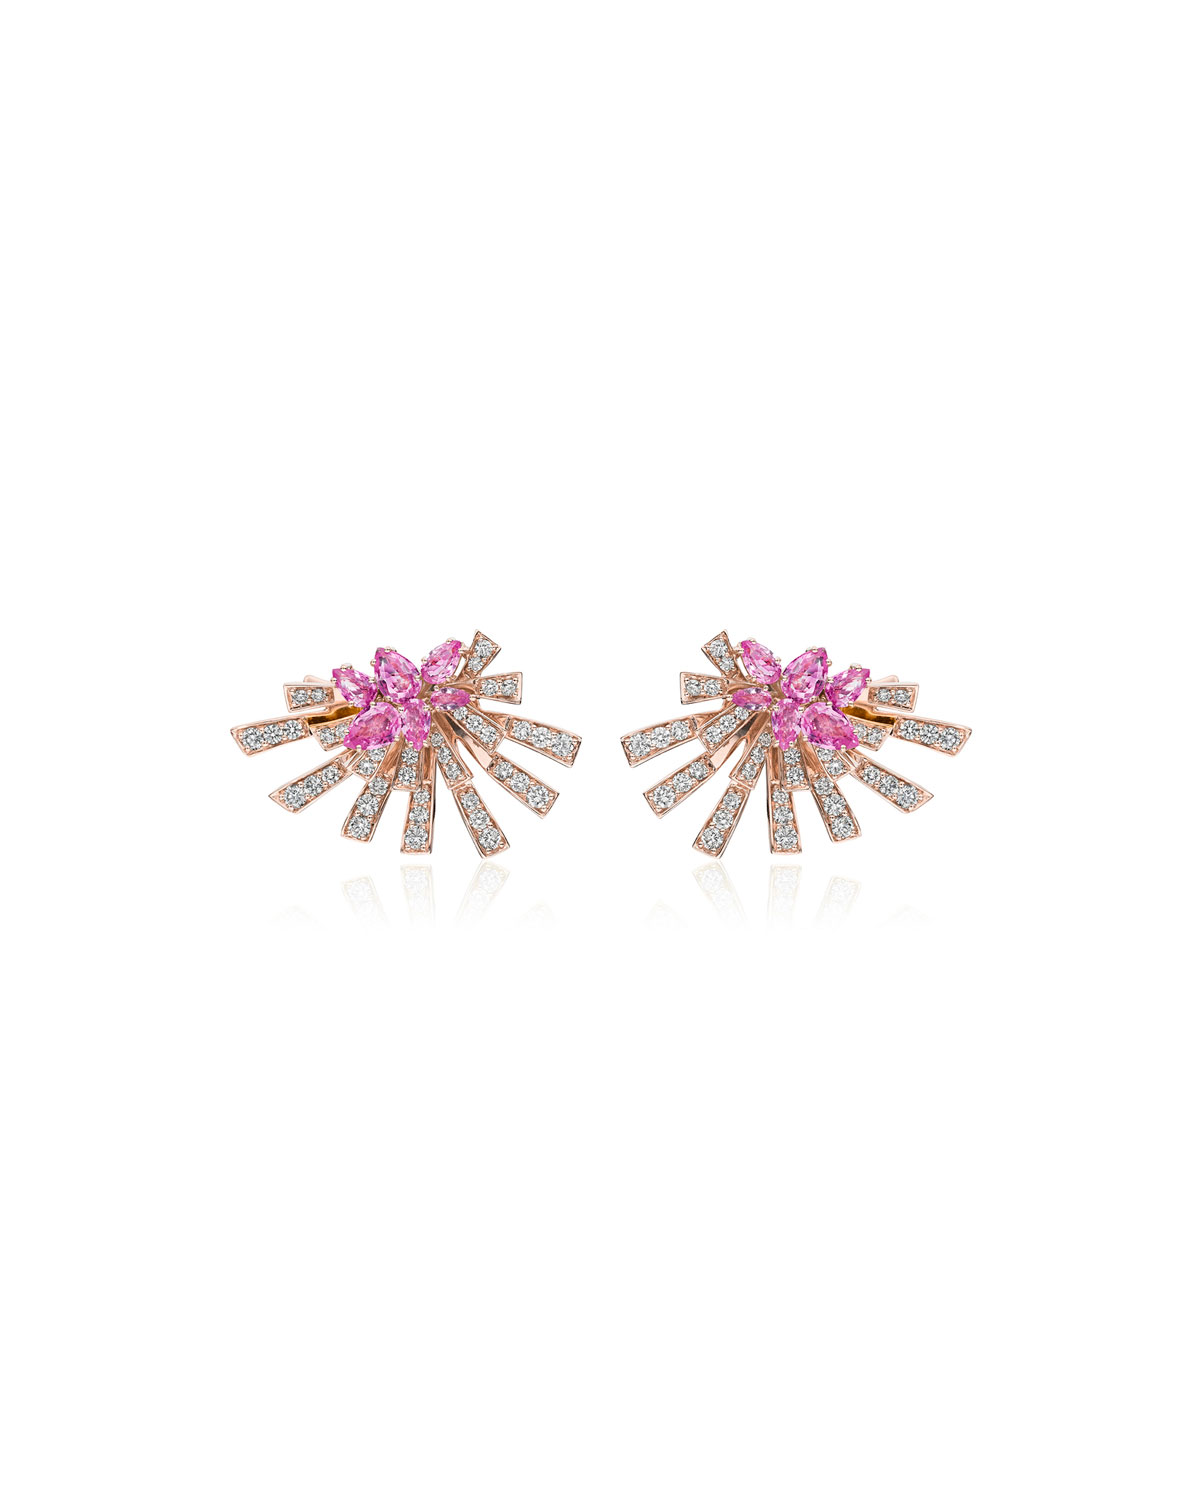 Mirage 18k Pink Gold Pink Sapphire and Diamond Cluster Earrings